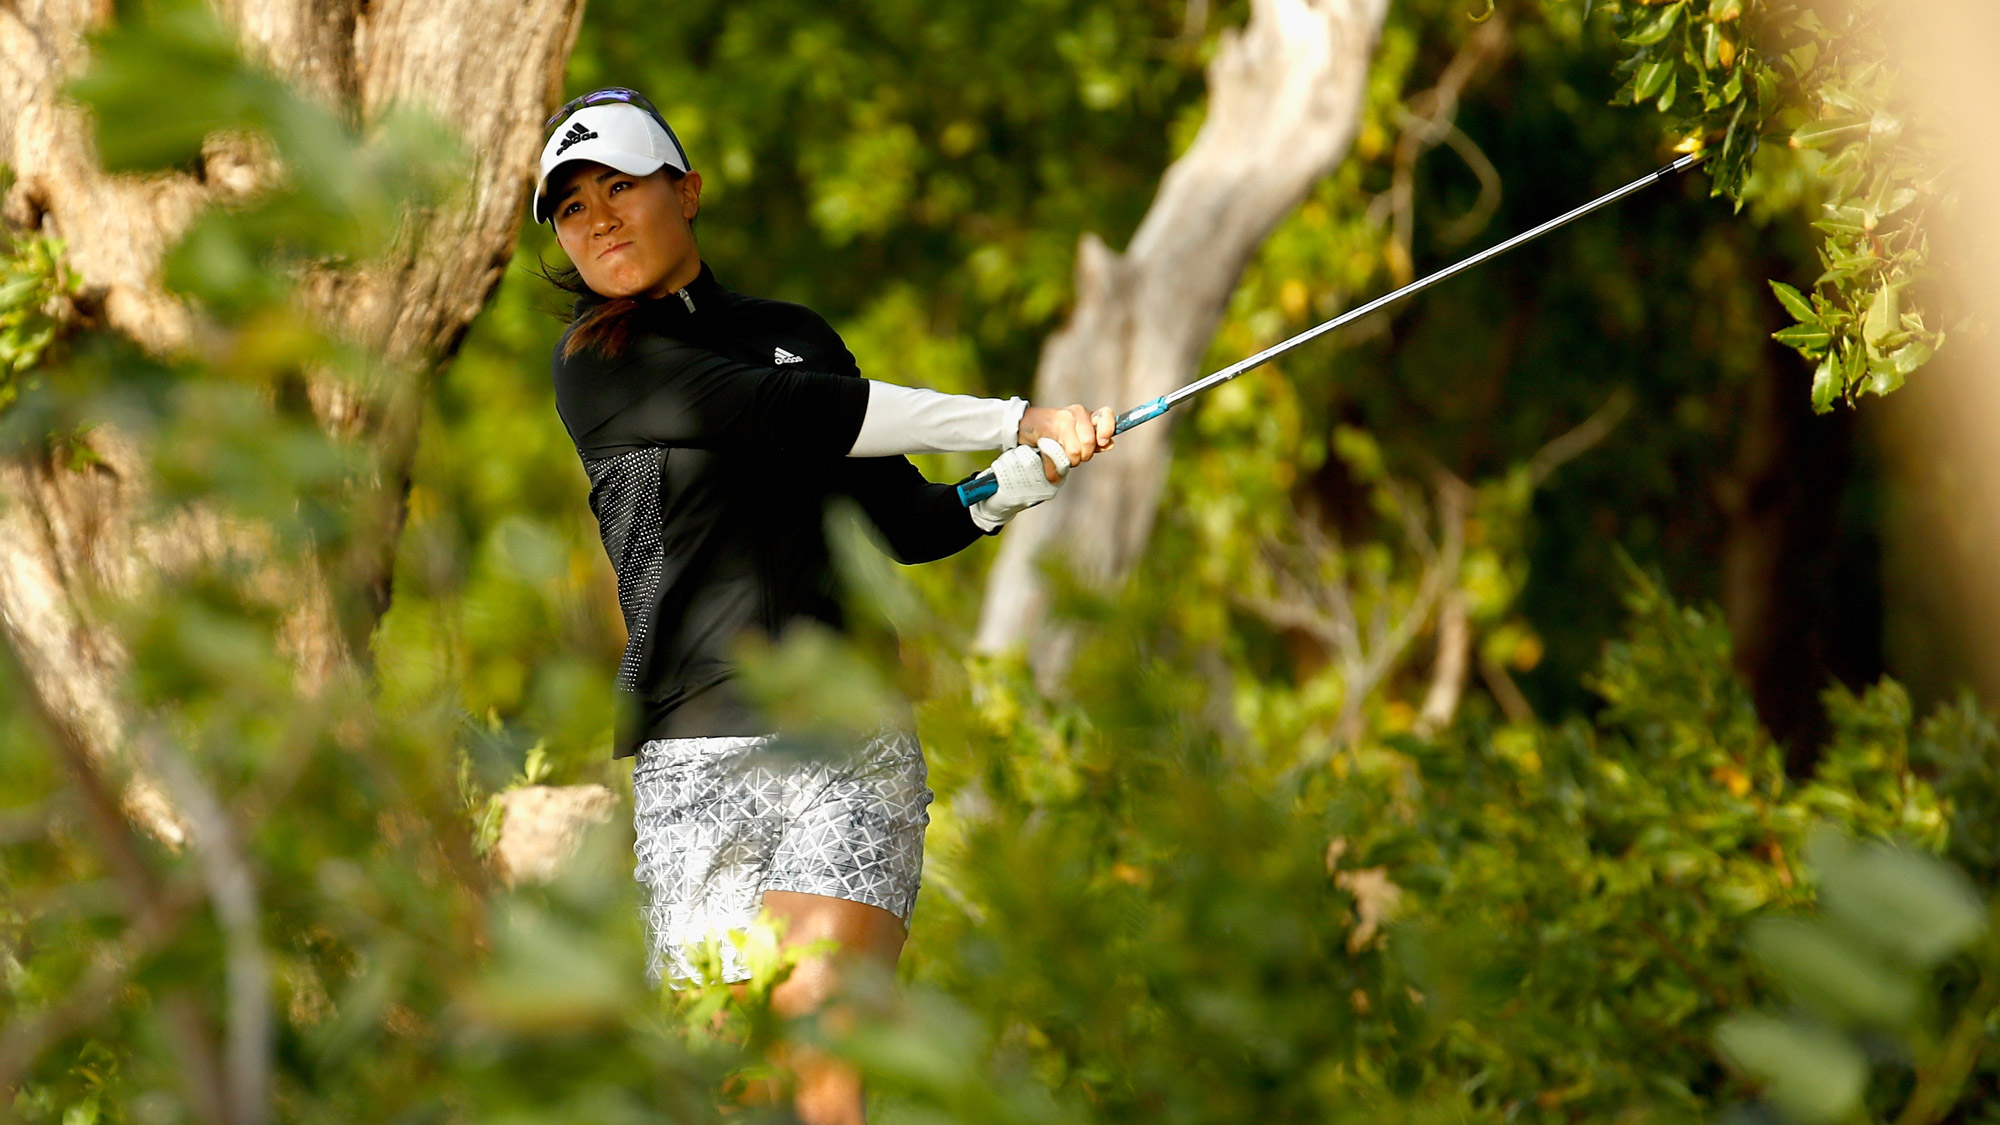 Danielle Kang hits her second shot on the first hole during the second round of the Pure Silk Bahamas LPGA Classic